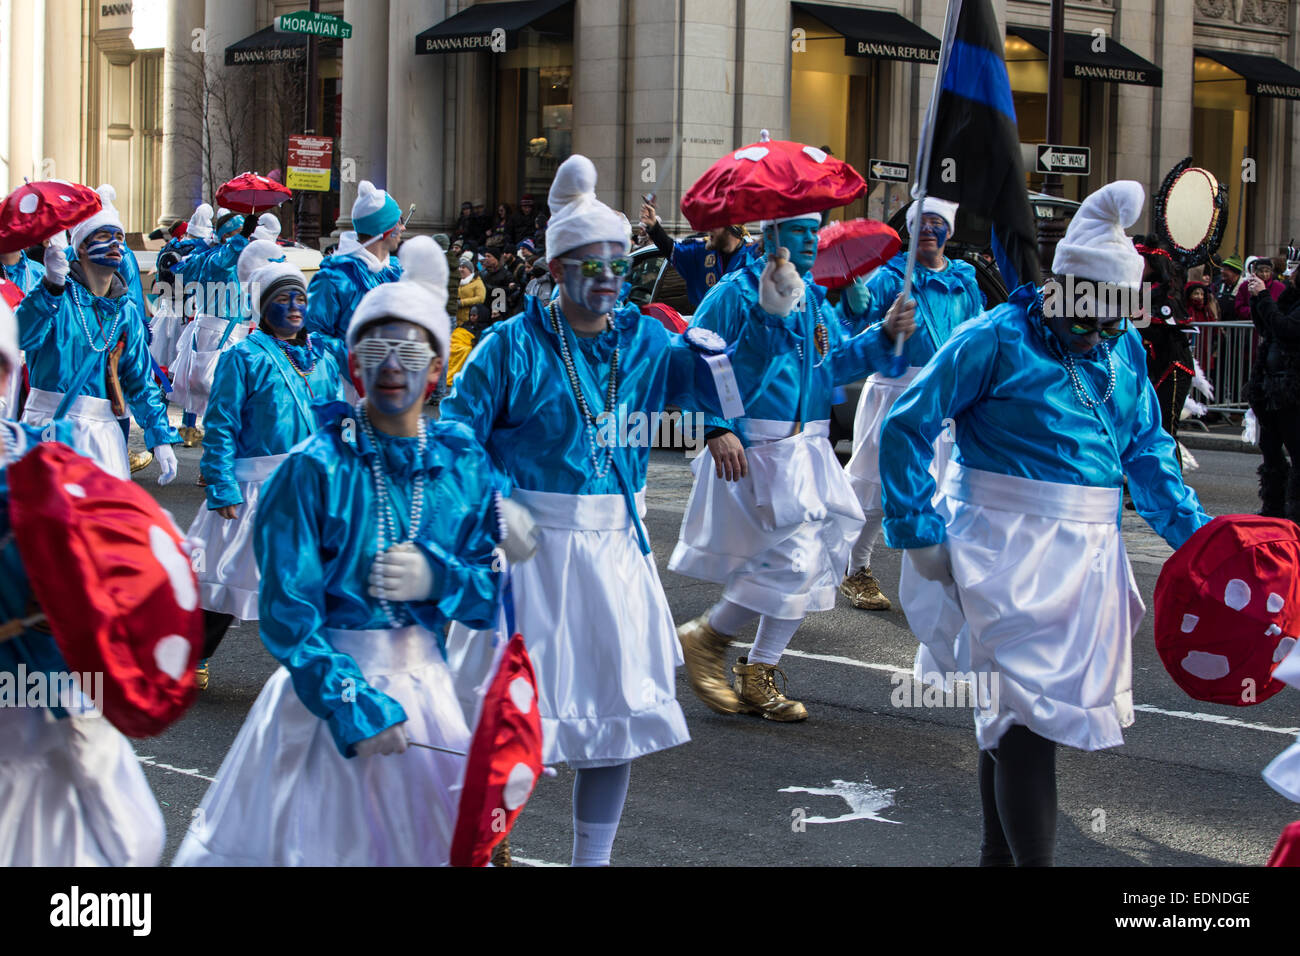 Elaborate cosyums are worn by Mummers in the annual parade. - Stock Image